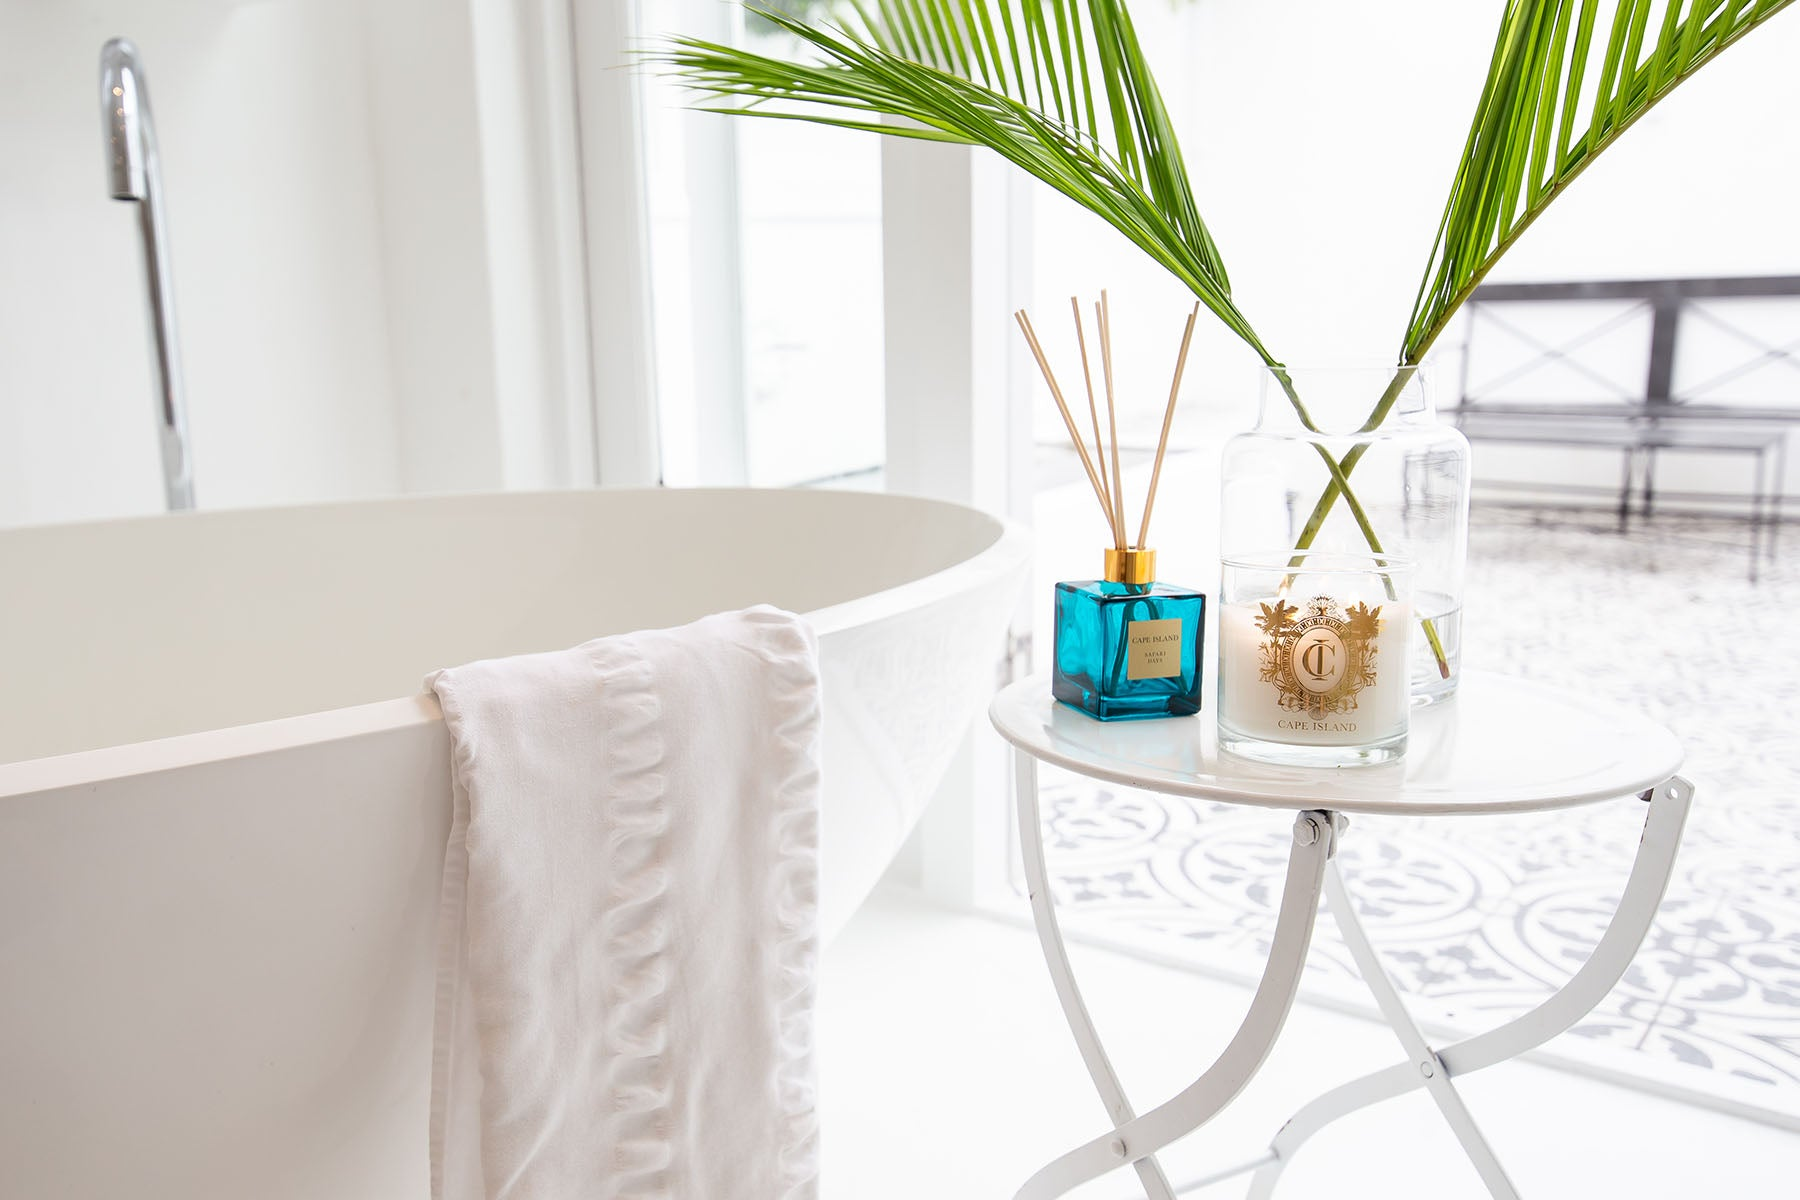 The Cape Island Clifton Beach diffuser and candle.. Cape Island luxury candles, soap products and home fragrances are available at Sarza home goods and furniture store in Rye New York.